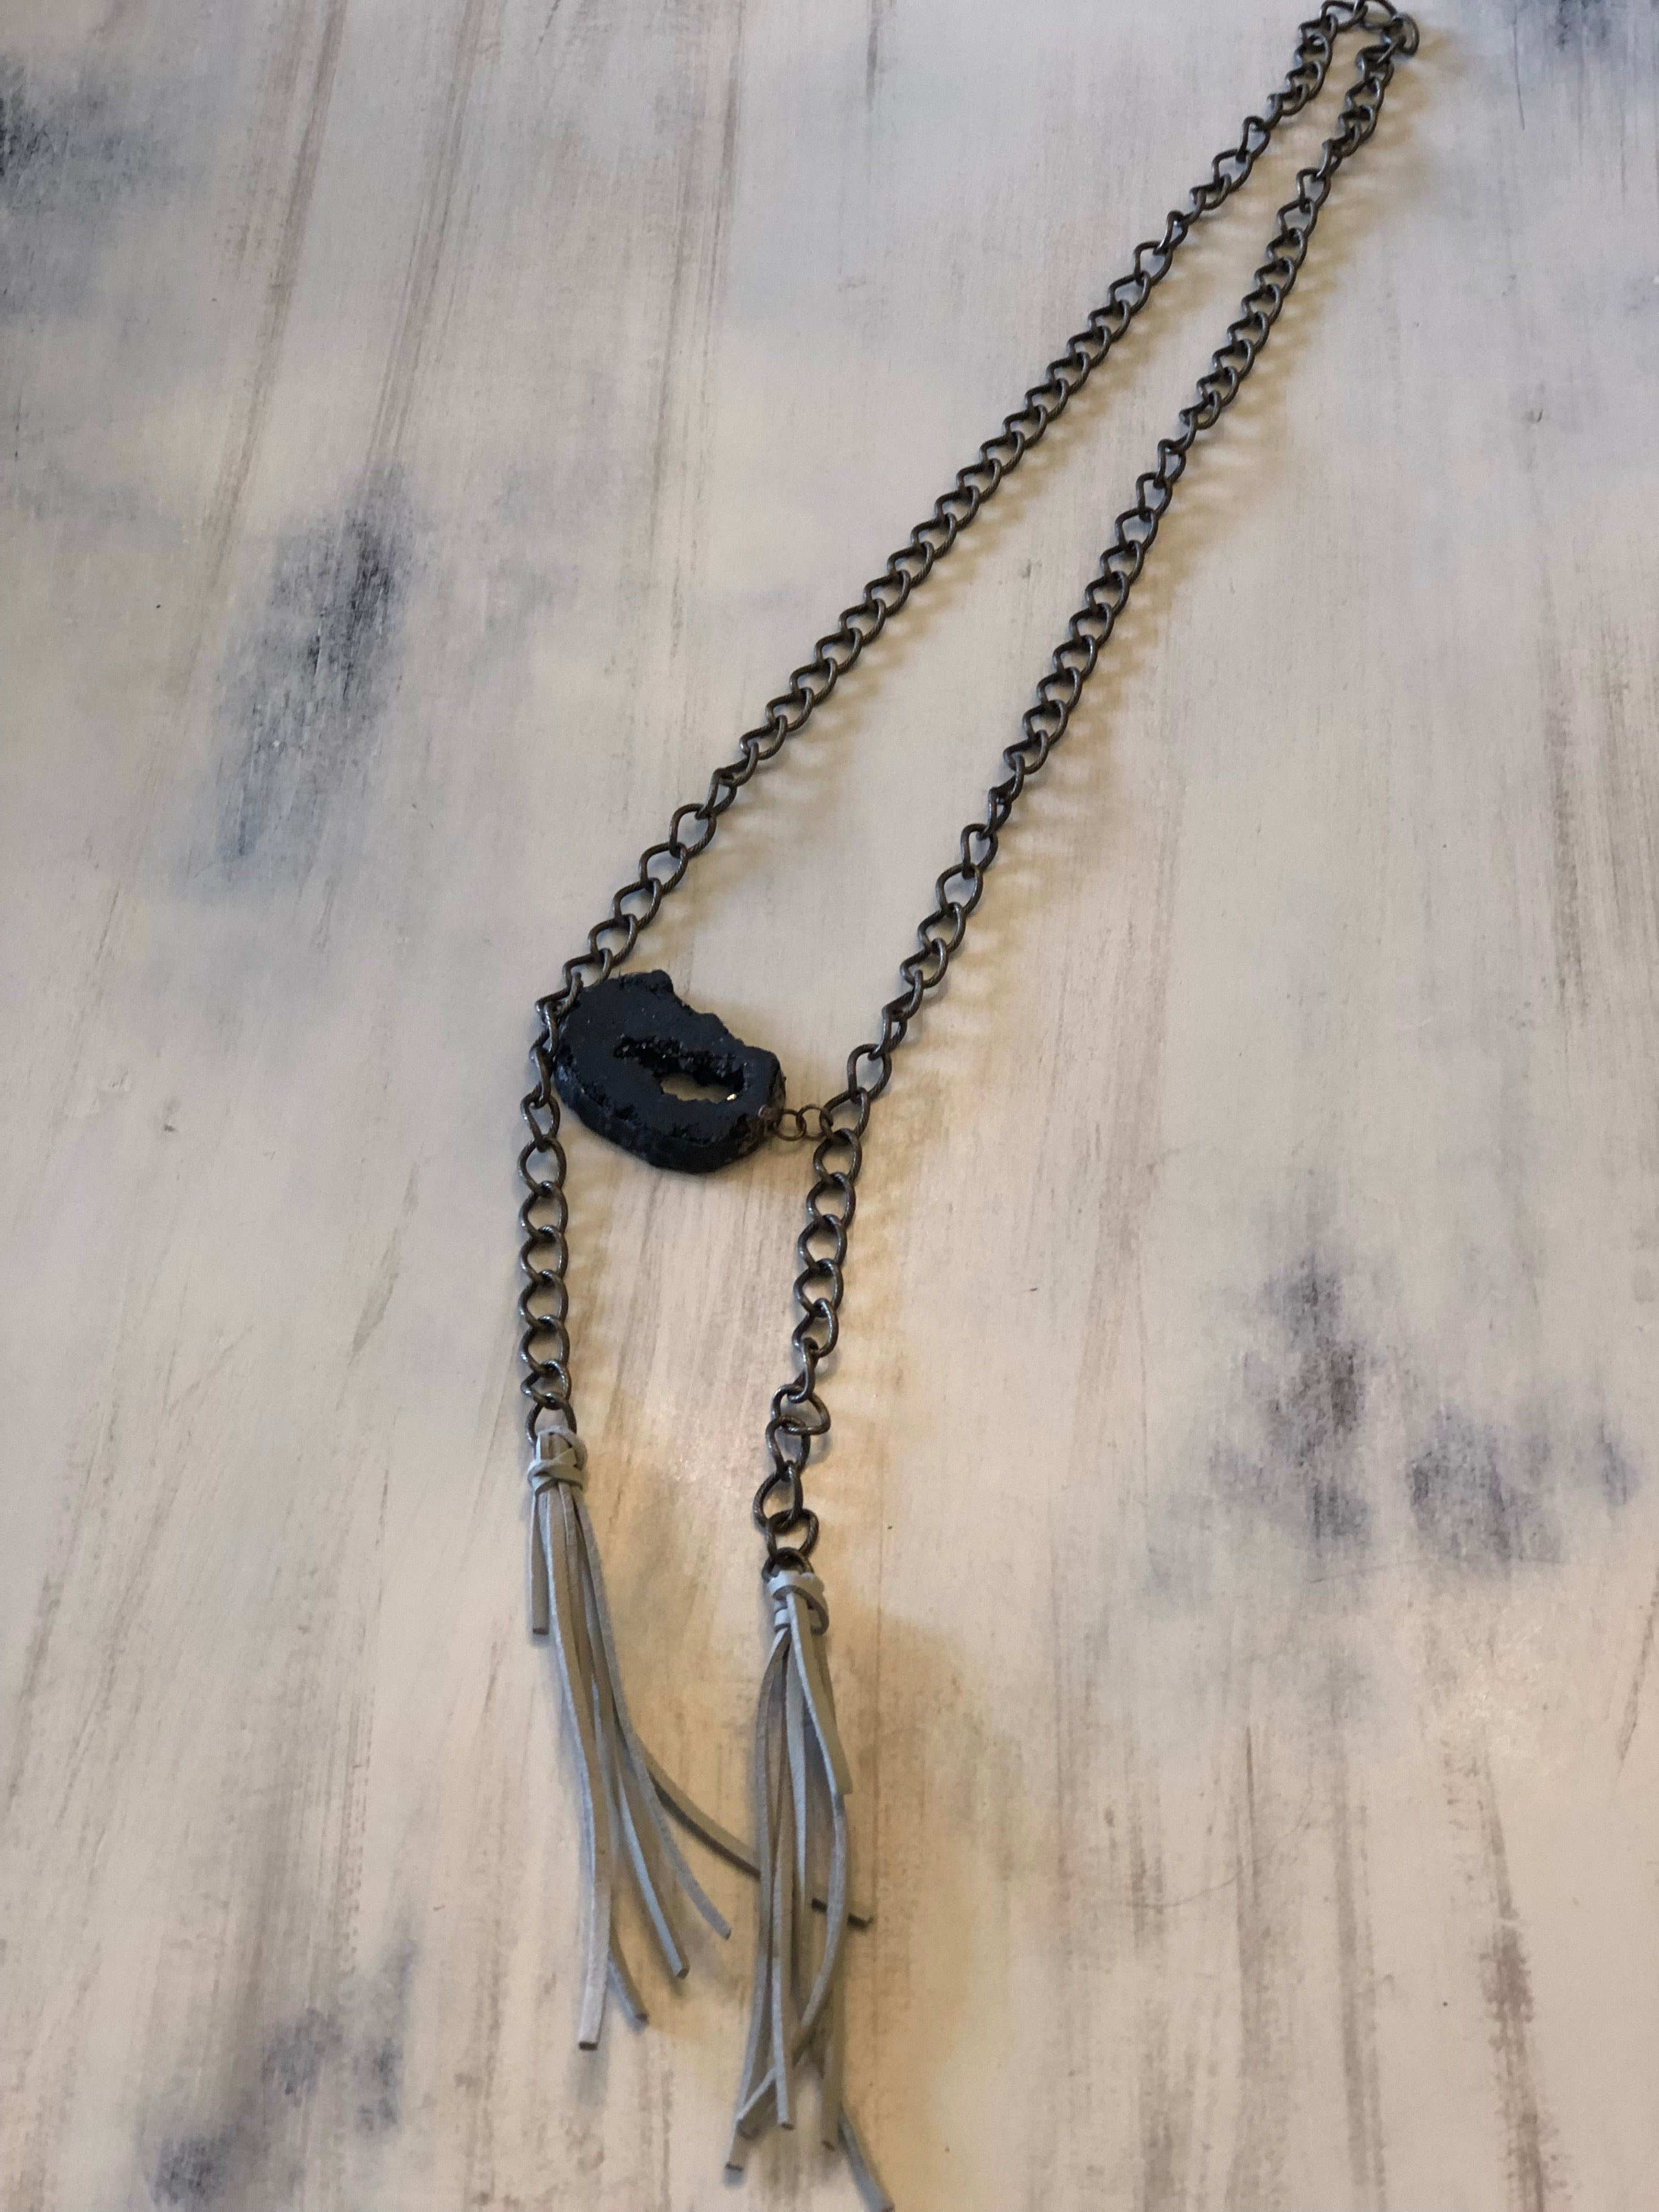 The Long Beach necklace